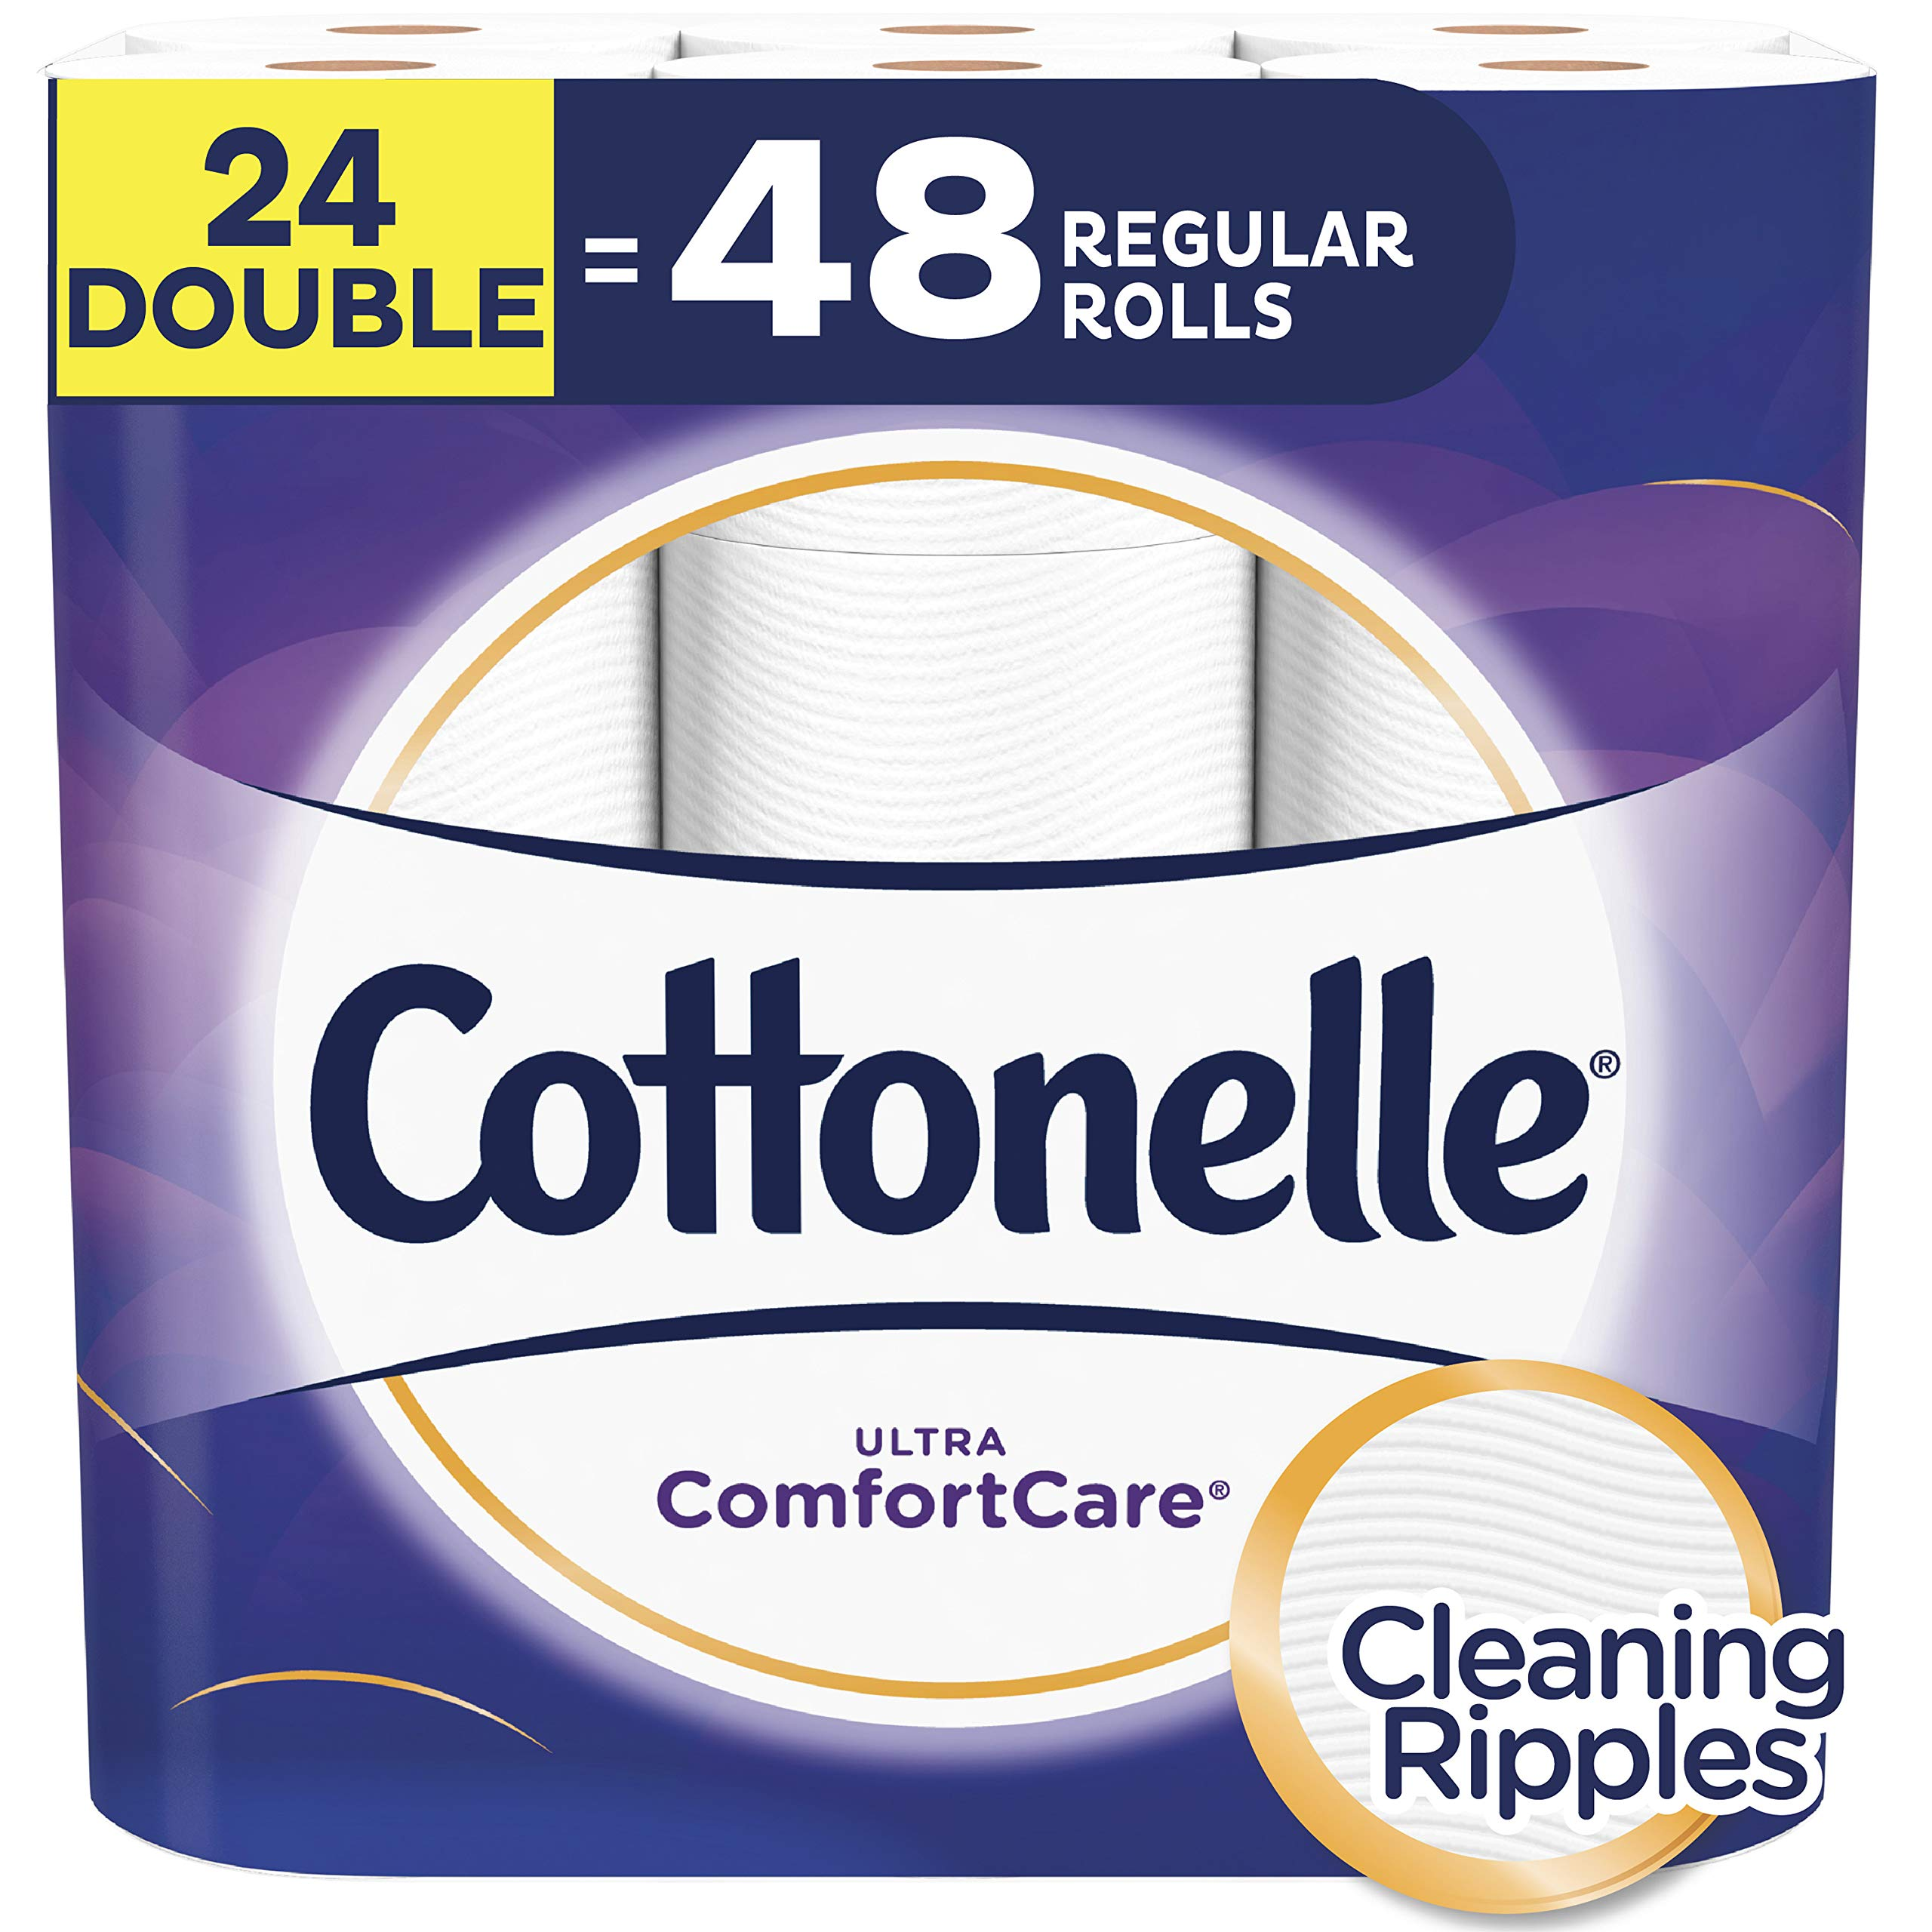 Cottonelle Ultra ComfortCare Toilet Paper, Soft Biodegradable Bath Tissue, Septic-Safe, 24 Double Rolls by Cottonelle